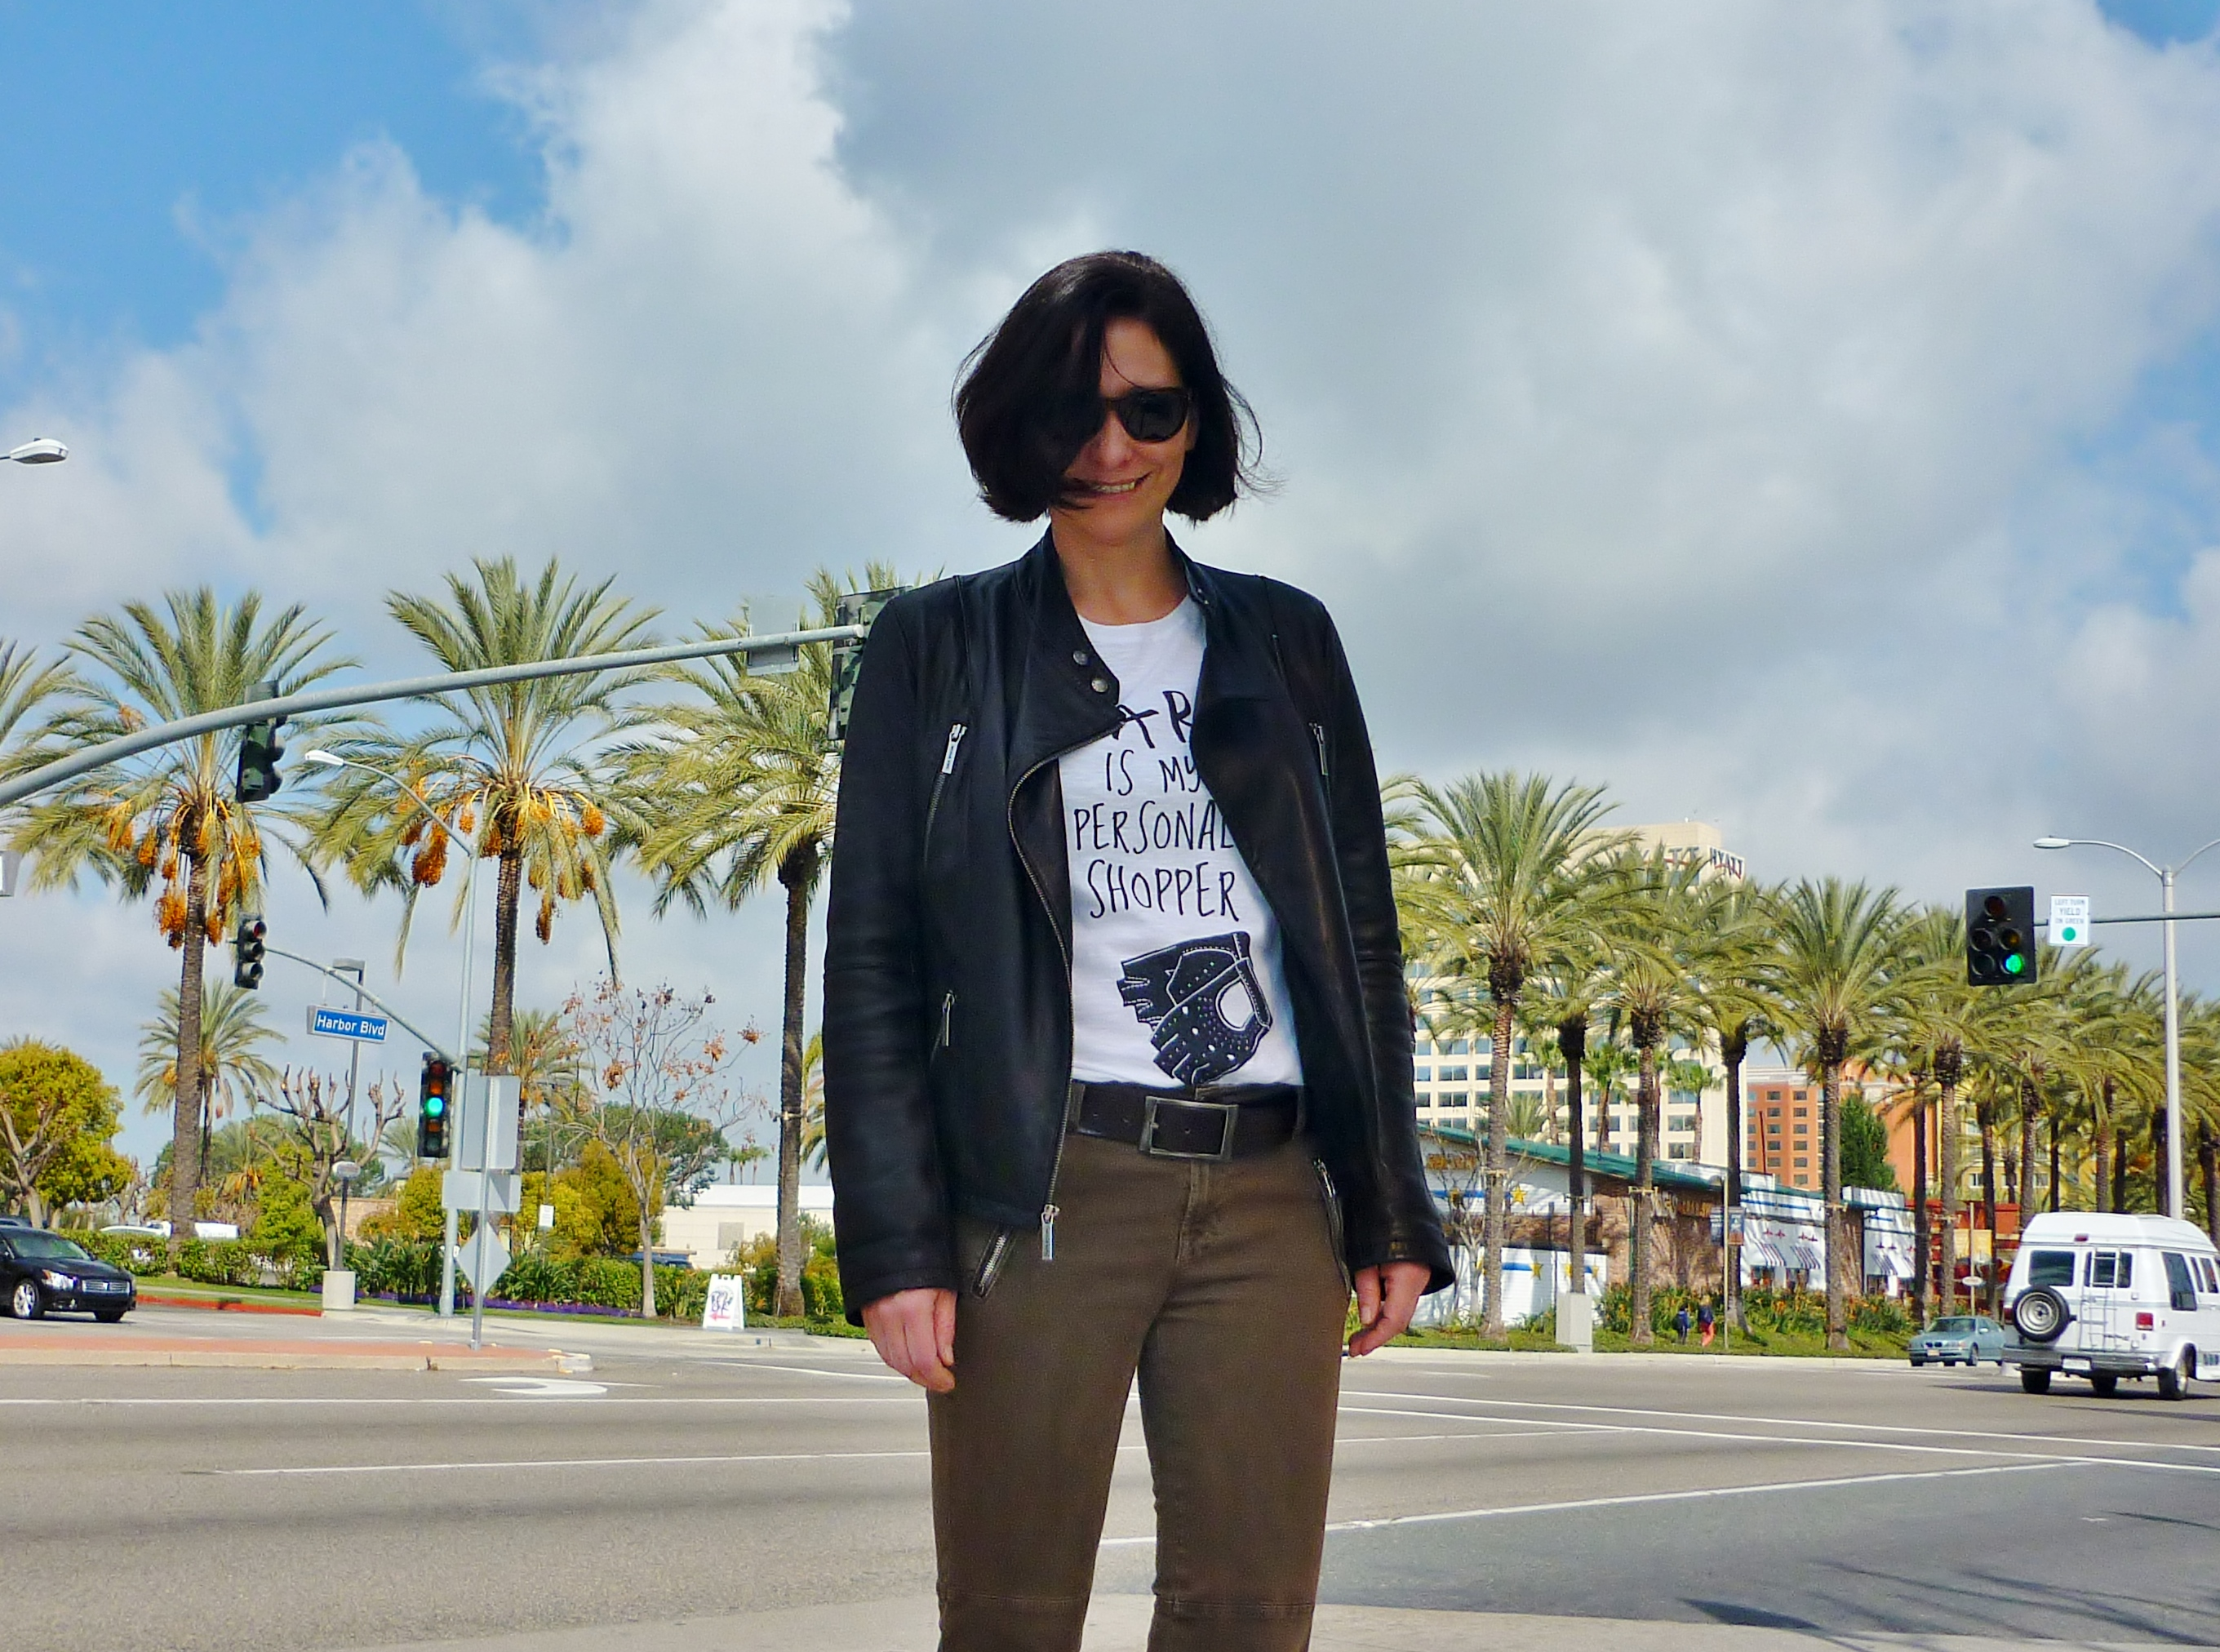 California street style: I'm wearing a slogan tee and a black Michale Kors leather jacket